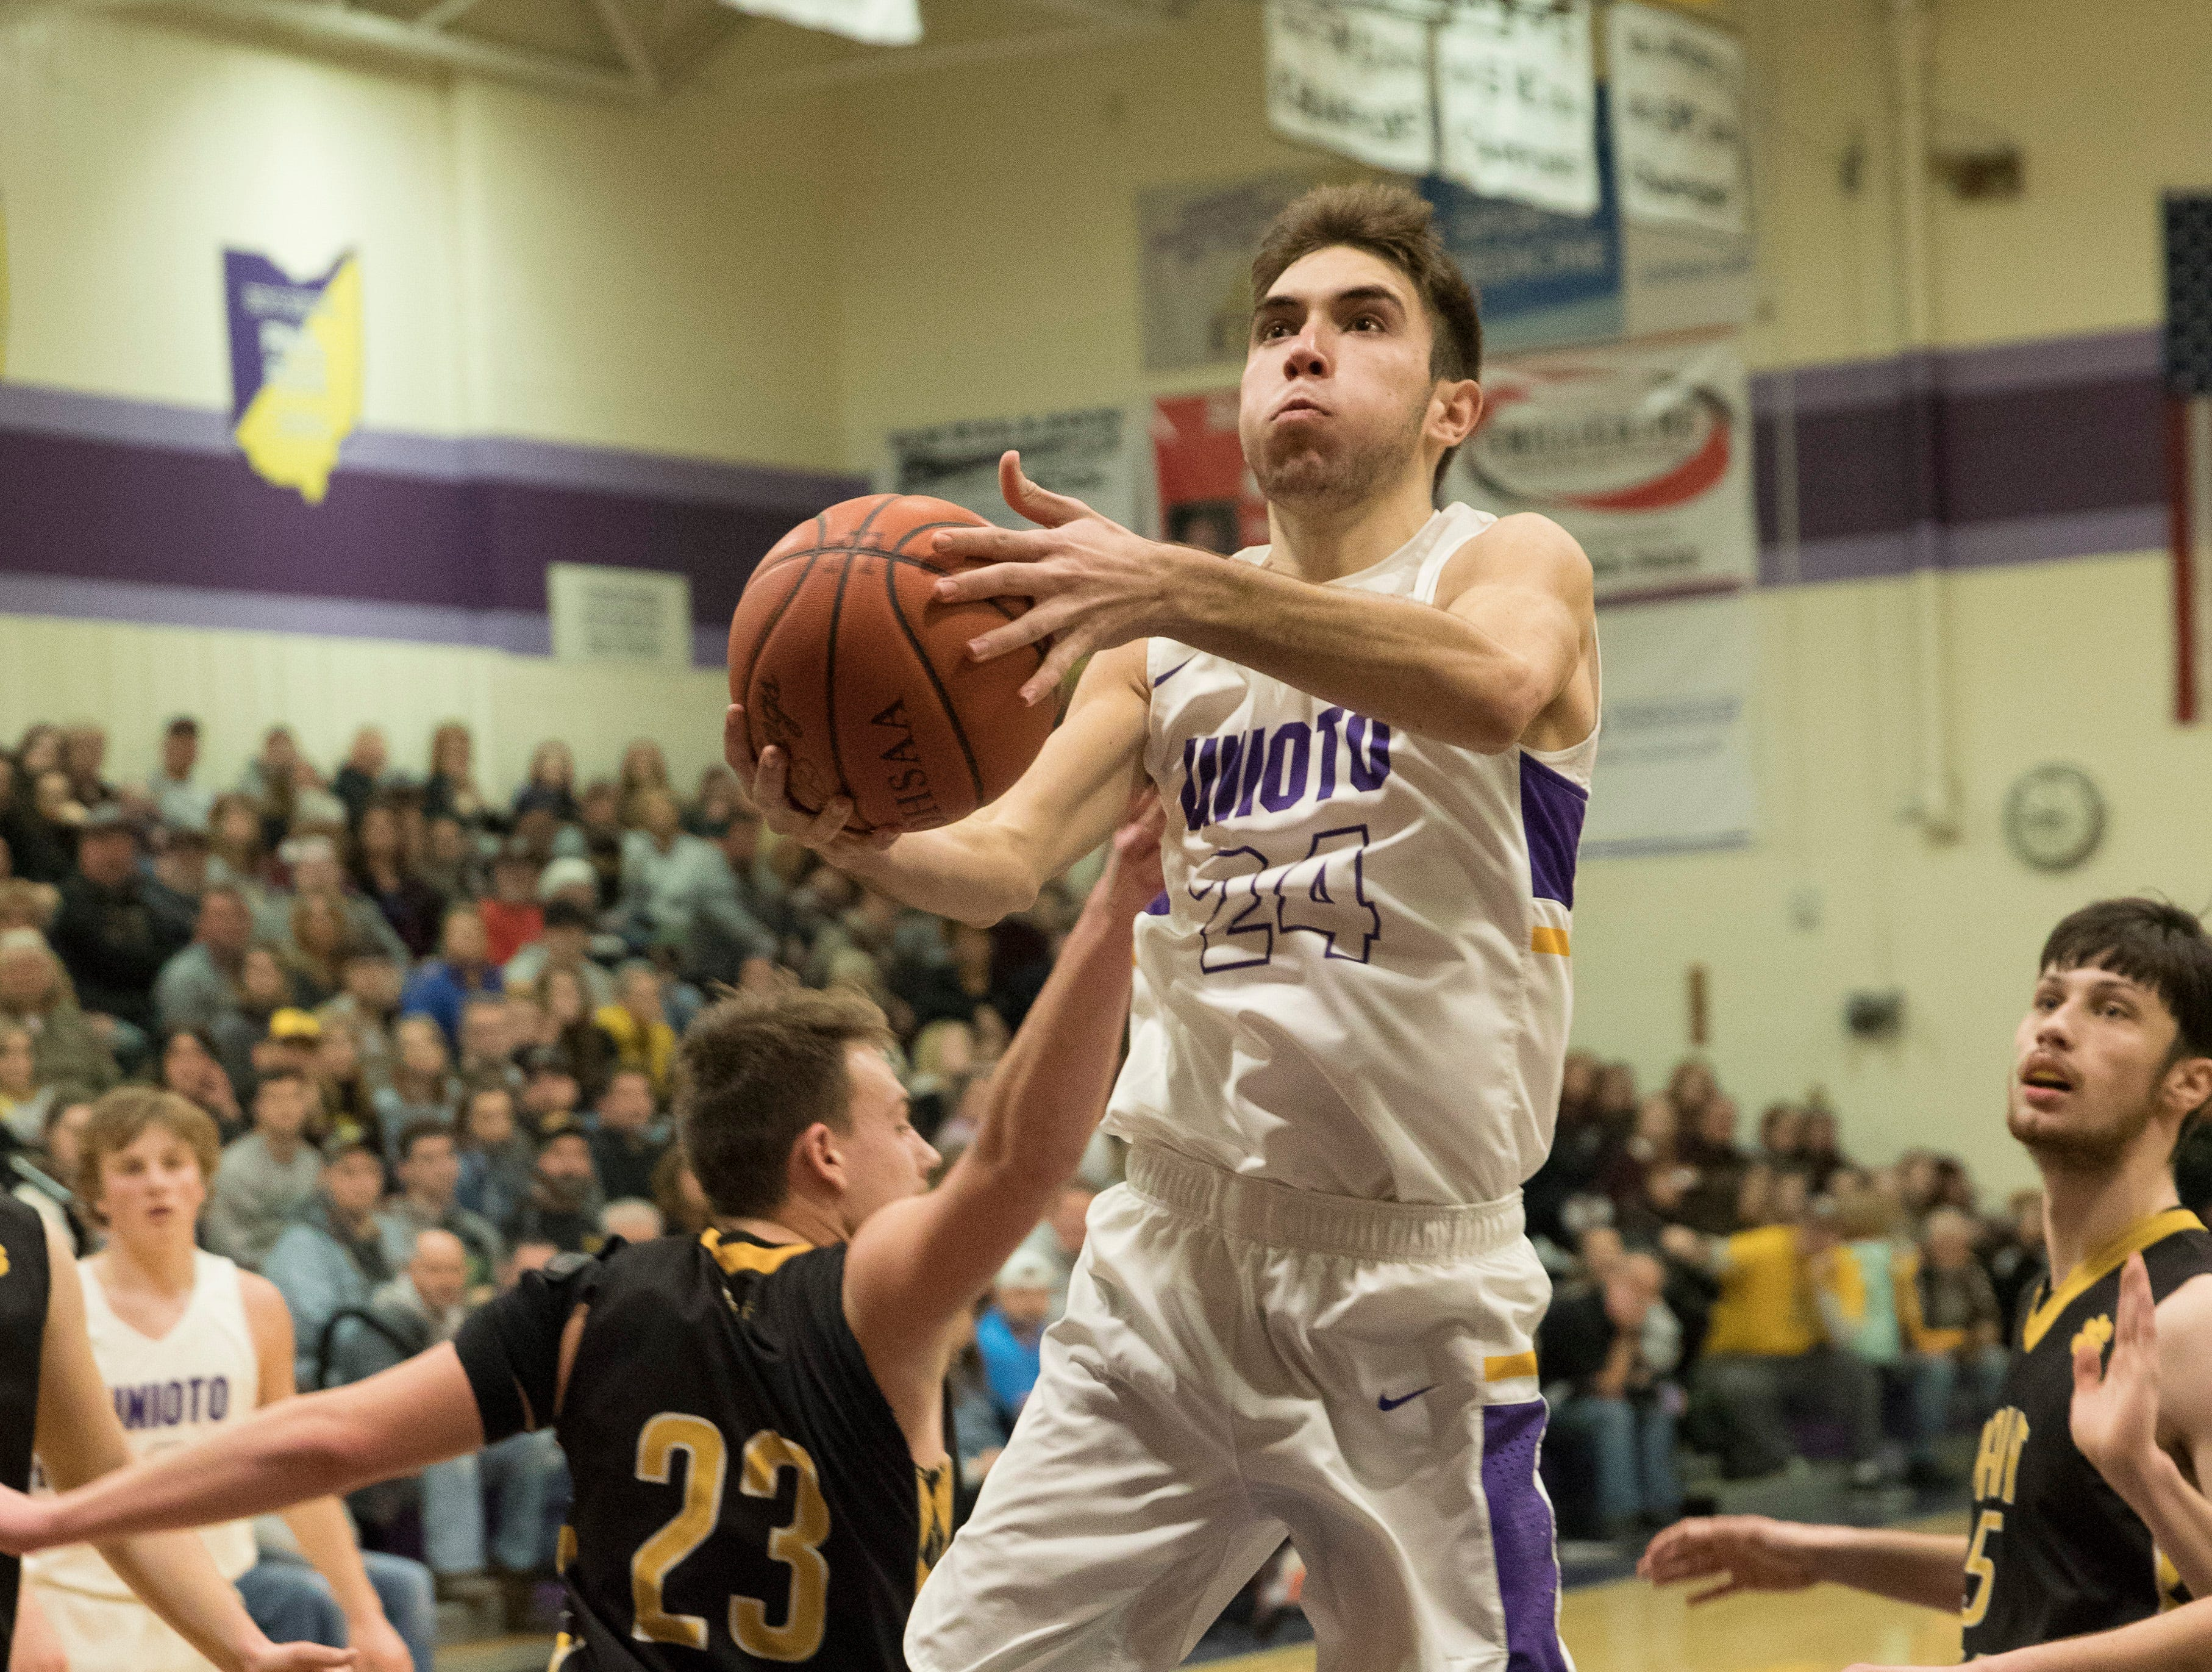 Unioto's Cade McKee makes a two-point shot against Paint Valley Friday at Unioto High School.